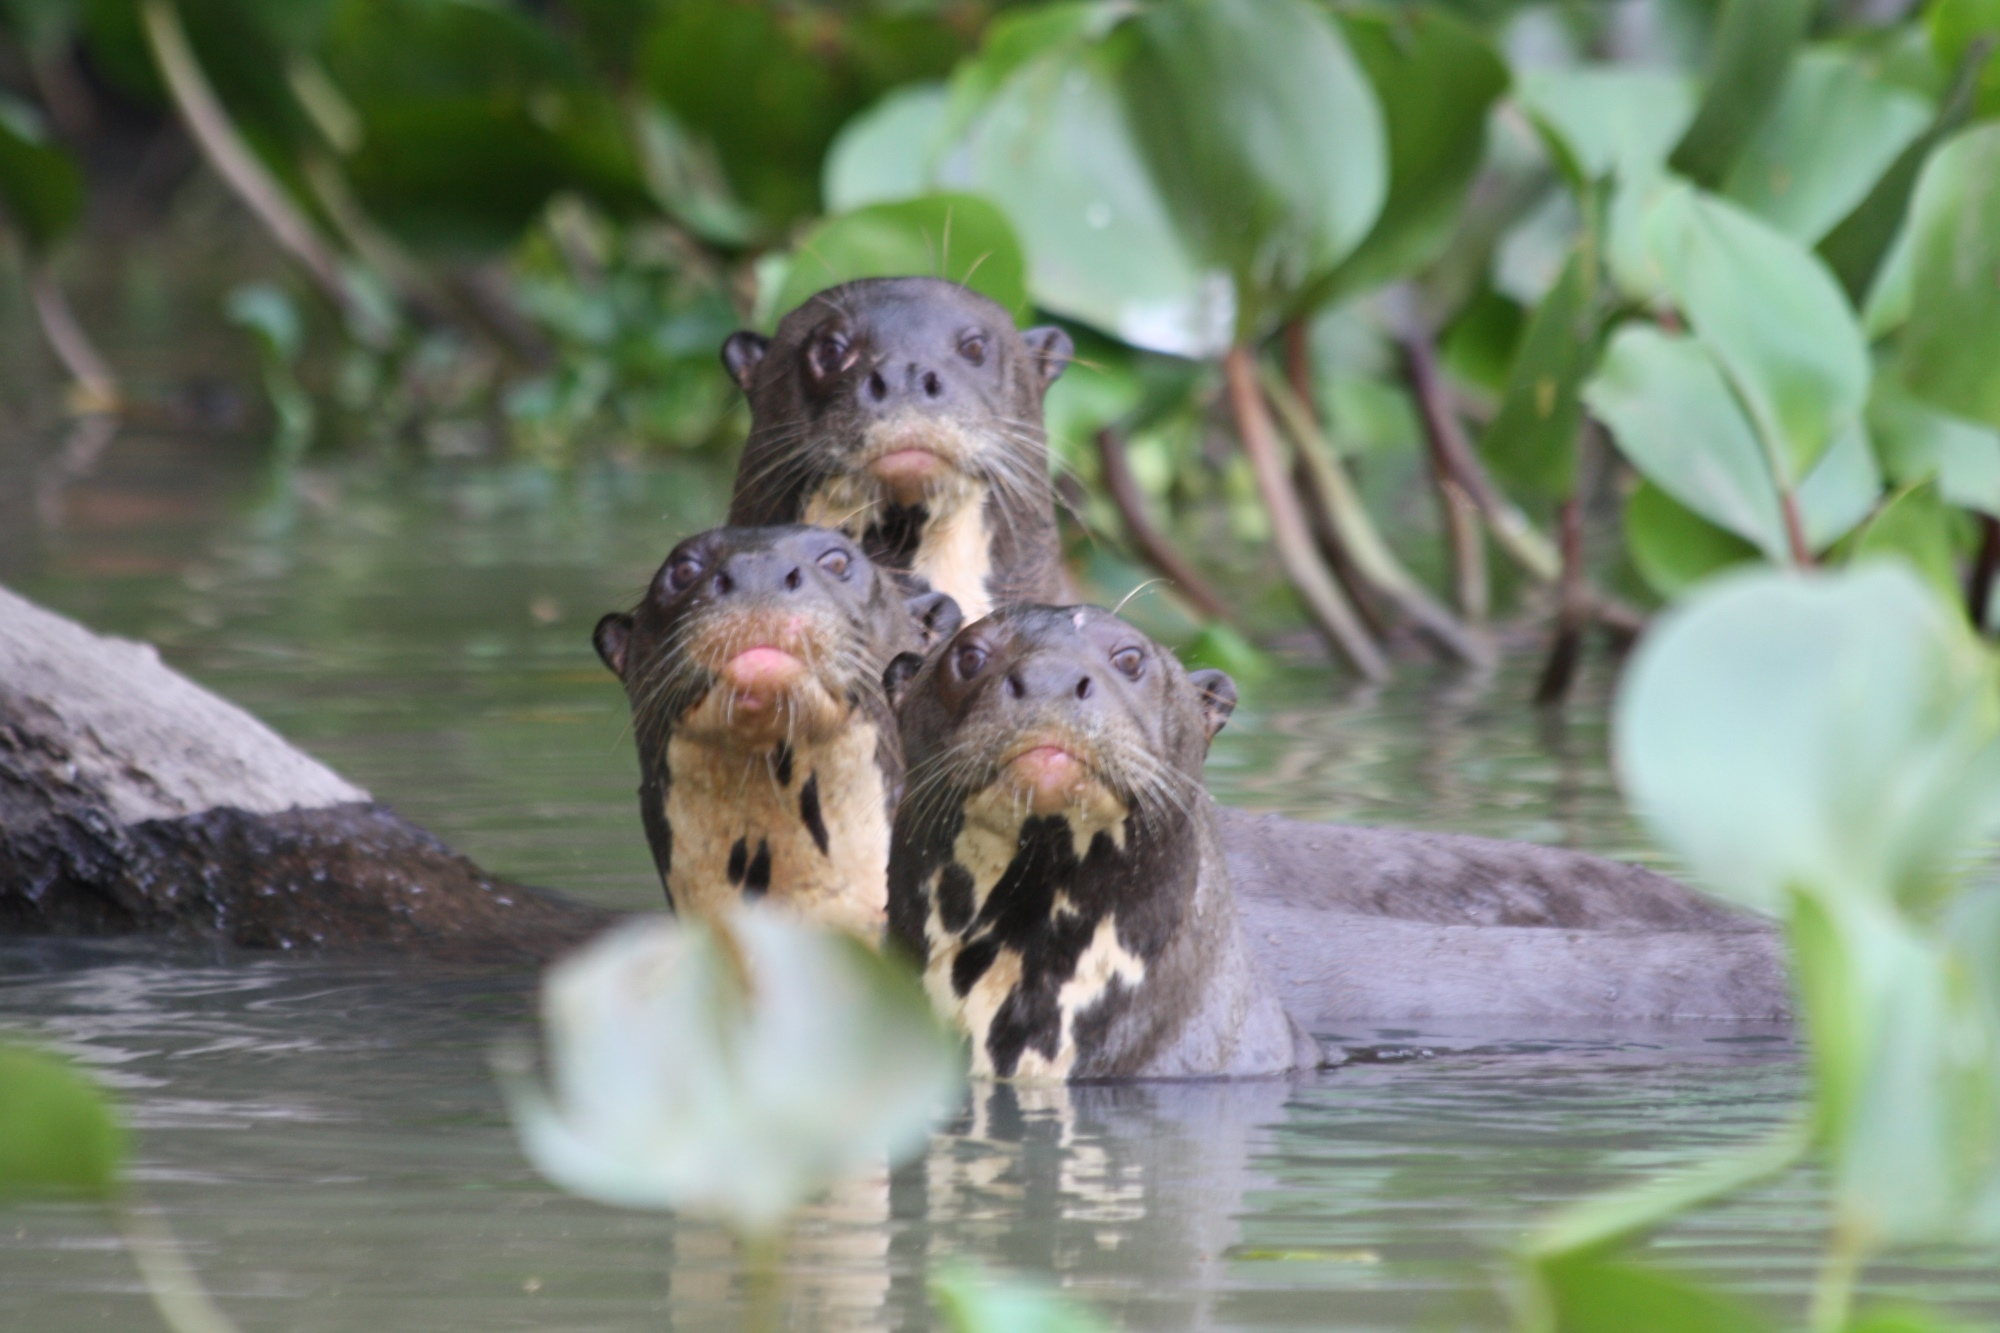 Otters in the Pantanal wetlands - by Gary West